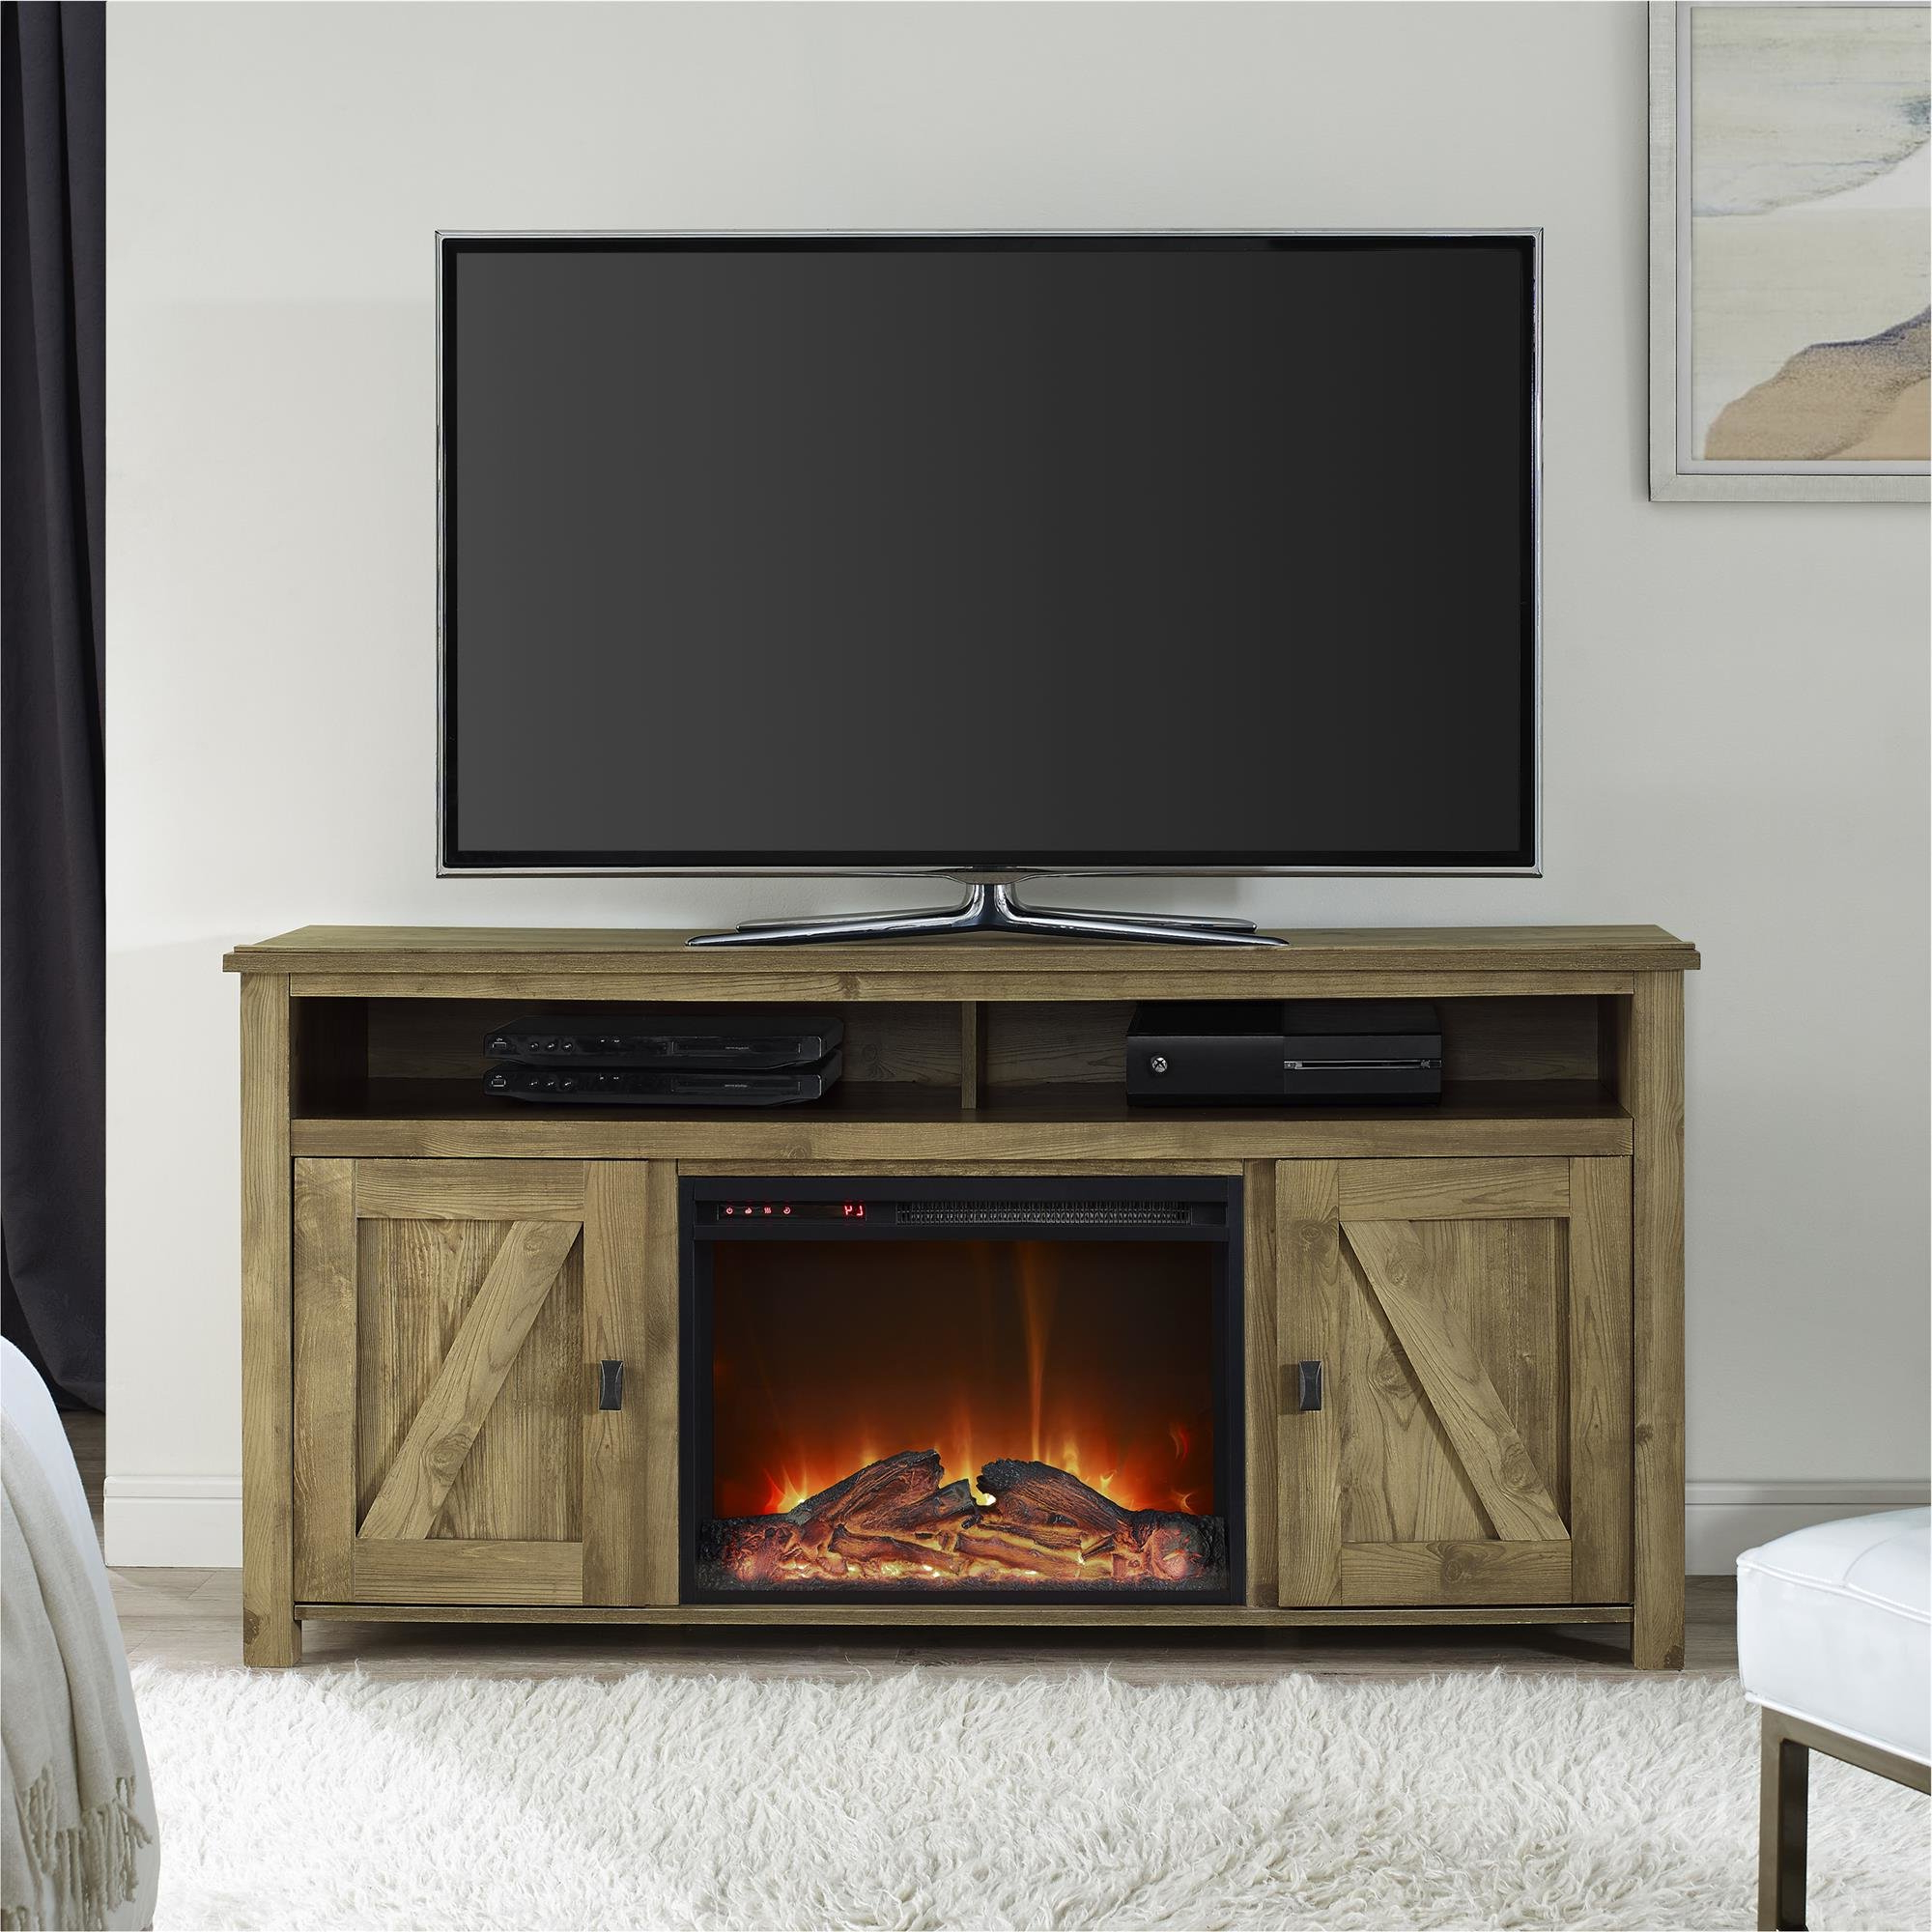 """Most Recent Mistana Whittier Tv Stand For Tvs Up To 60"""" With Fireplace & Reviews For Dixon White 65 Inch Tv Stands (View 7 of 20)"""